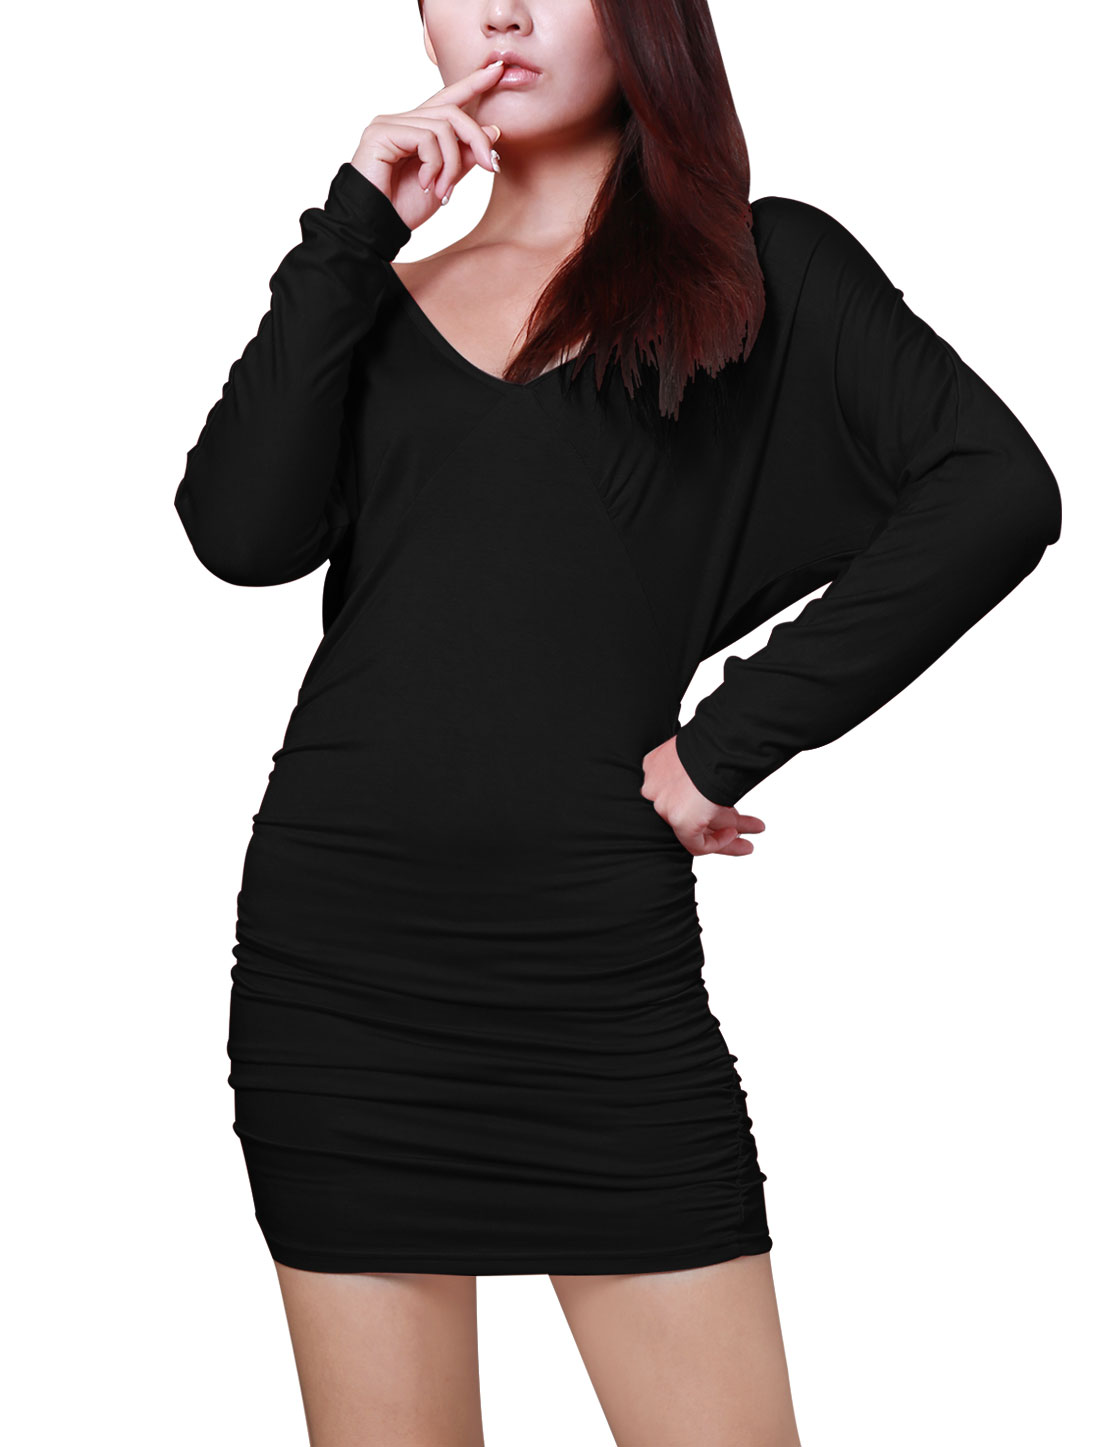 Ladies Long Sleeve Deep V Neck Straight Cutting Black Clubwear Dress XS